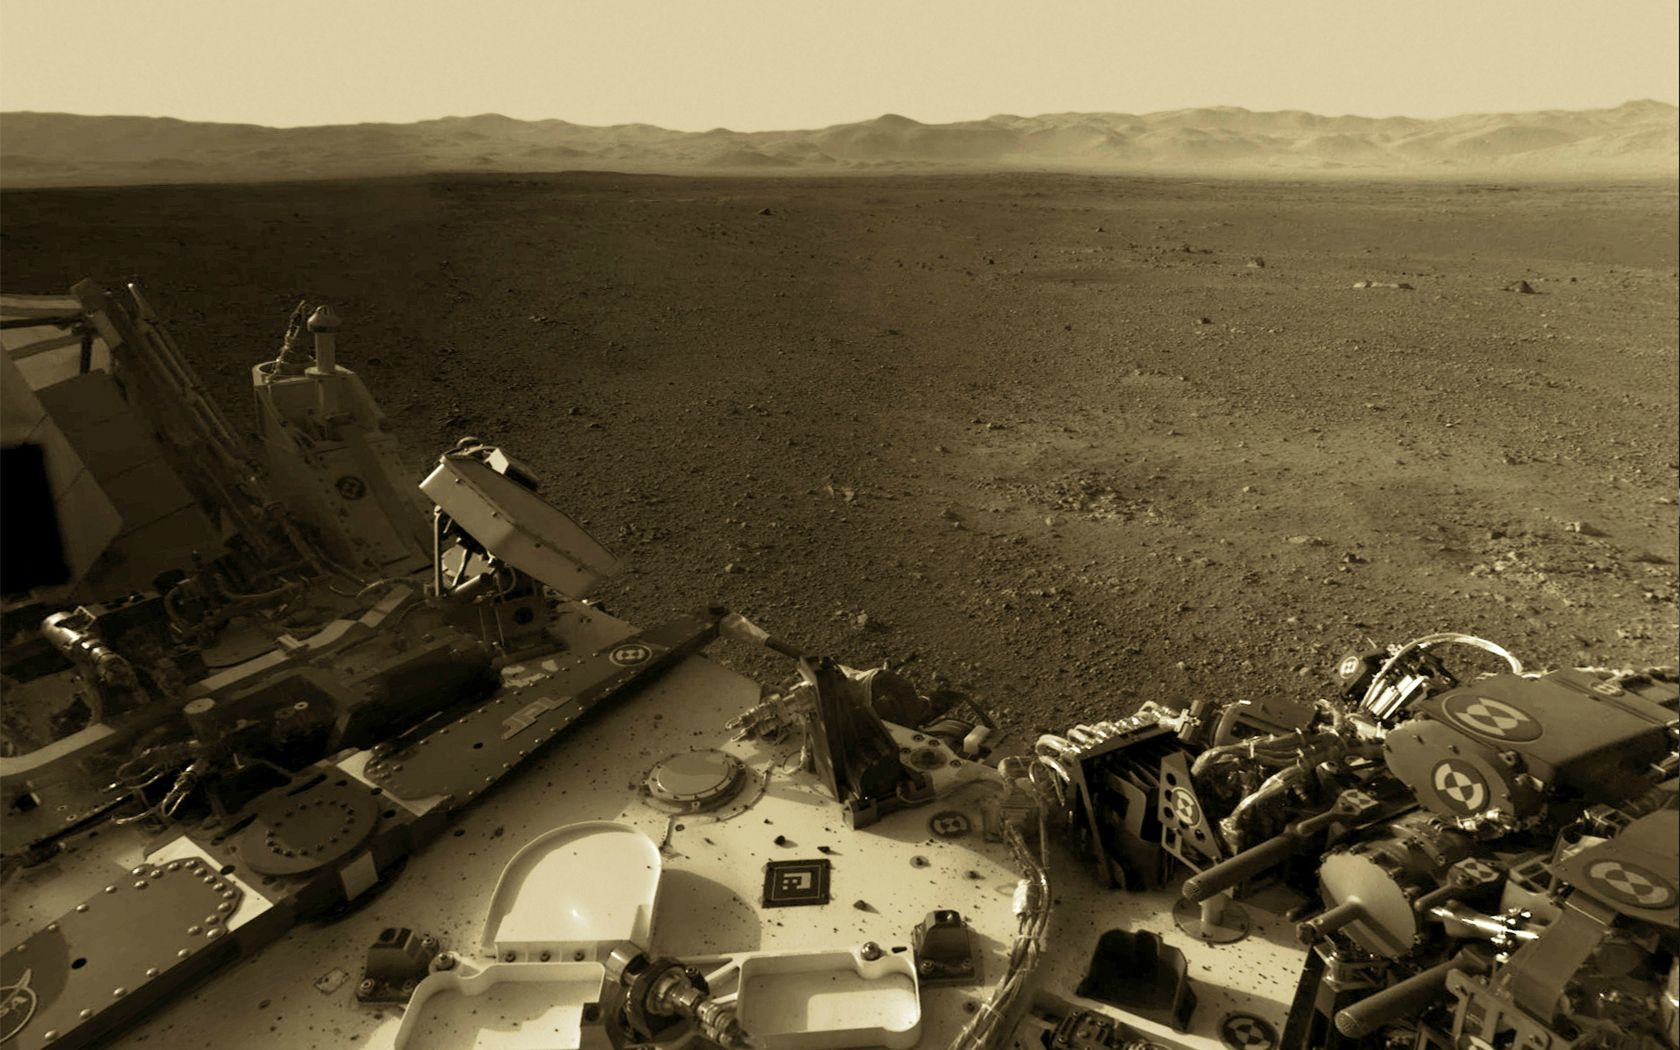 curiosity rover on mars background - photo #38